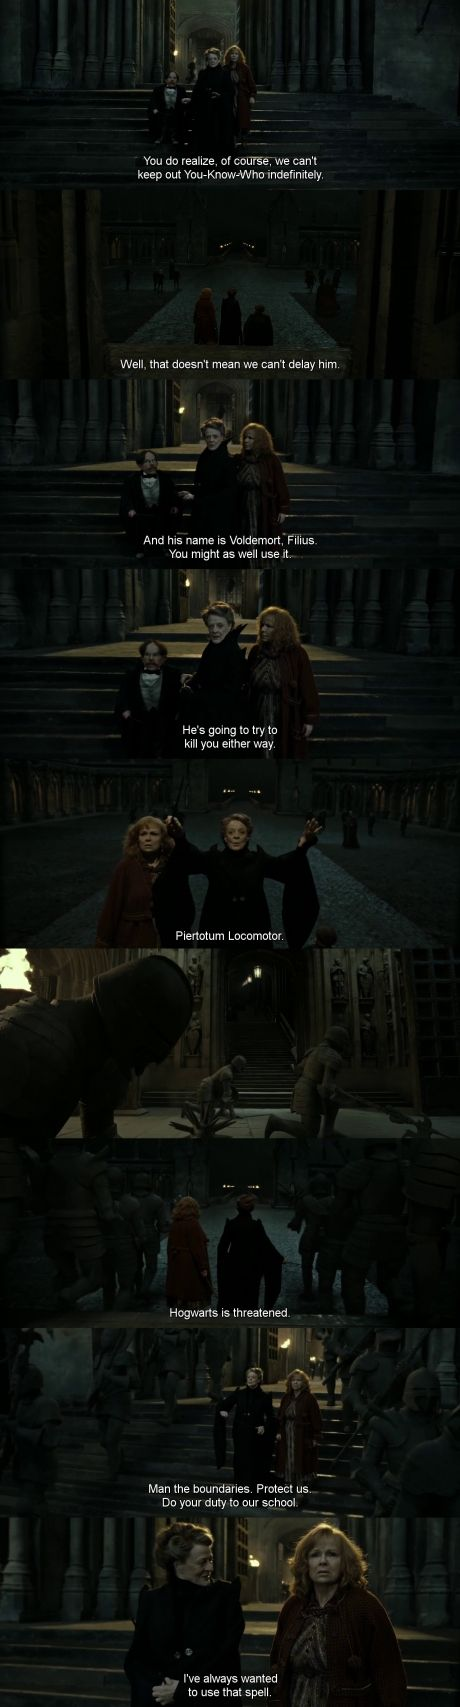 """I read Sorcerer's Stone recently, and I remember Minerva cringing every time Albus said """"Voldemort"""". He kept telling her it's just a name, and not to be bothered by it. I love that she's finally accepted that fact. And that she's now the one telling others what Albus told her. Thus, filling that little role he once held."""